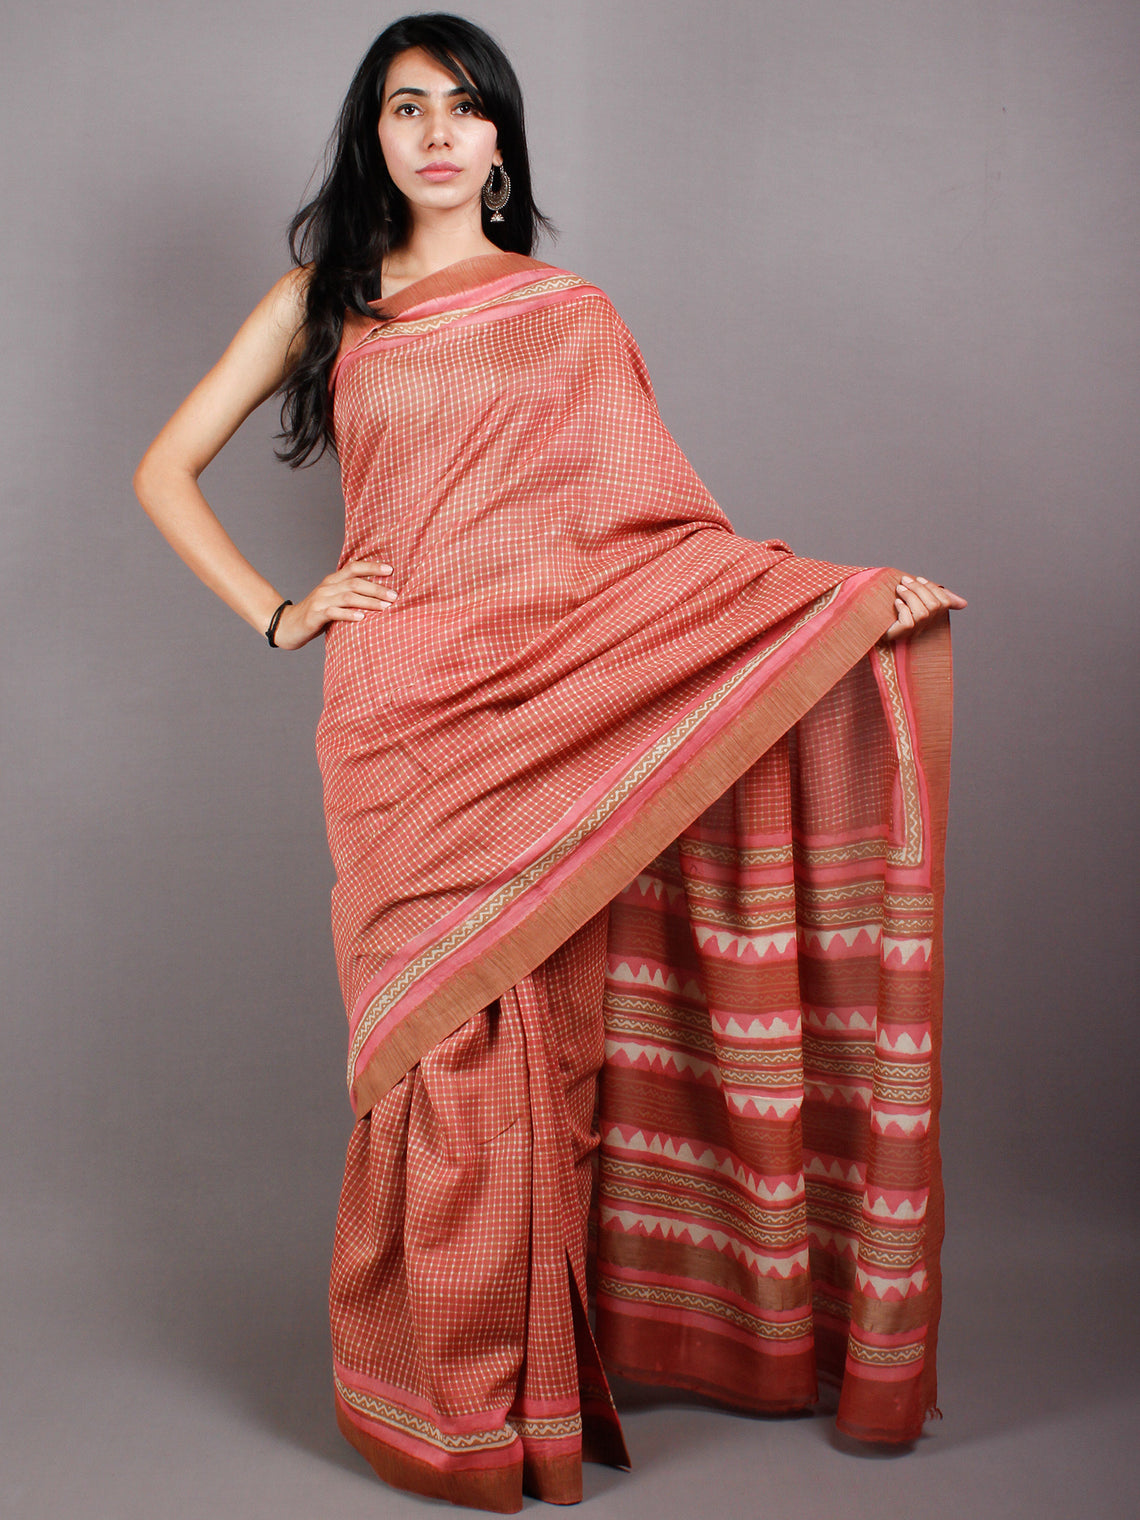 Pastel Peach Beige Hand Block Printed in Natural Vegetable Colors Chanderi Saree With Geecha Border - S03170494